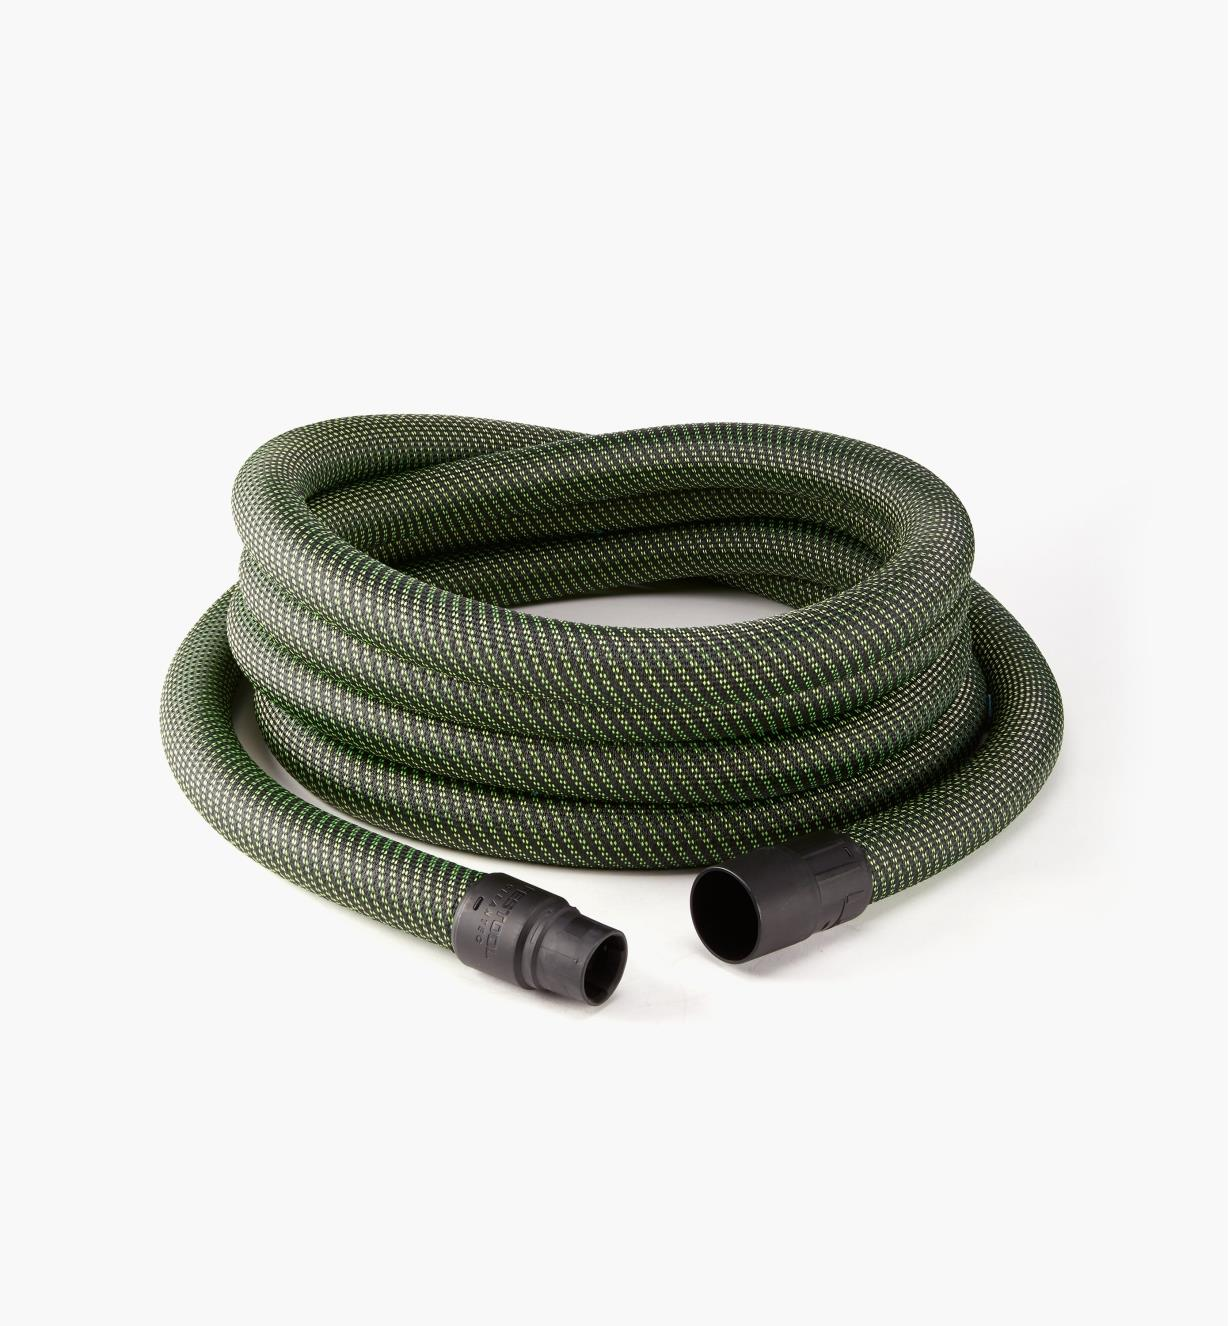 "ZA500685 - 36mm x 7m (1 7/16"" x 23') Anti-static Hose"